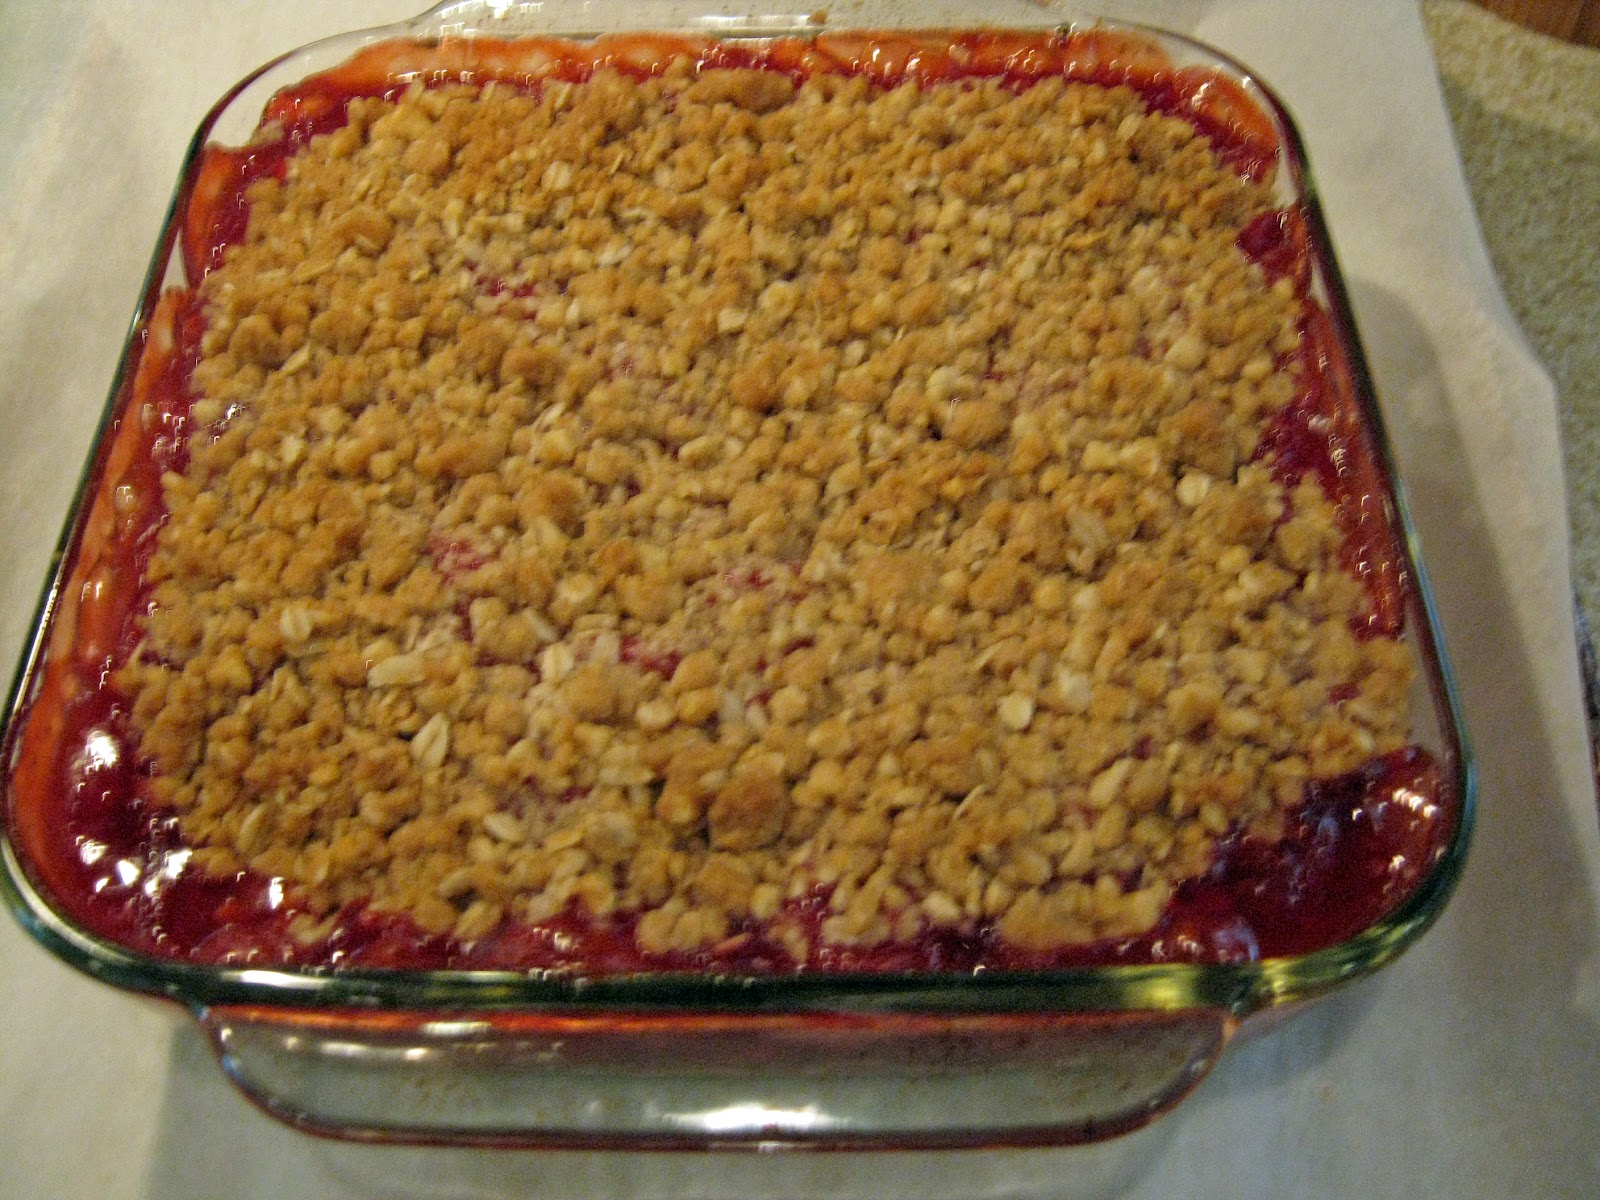 ... About with Grandpat: Dorie Greenspan's Strawberry/Rhubarb Crisp